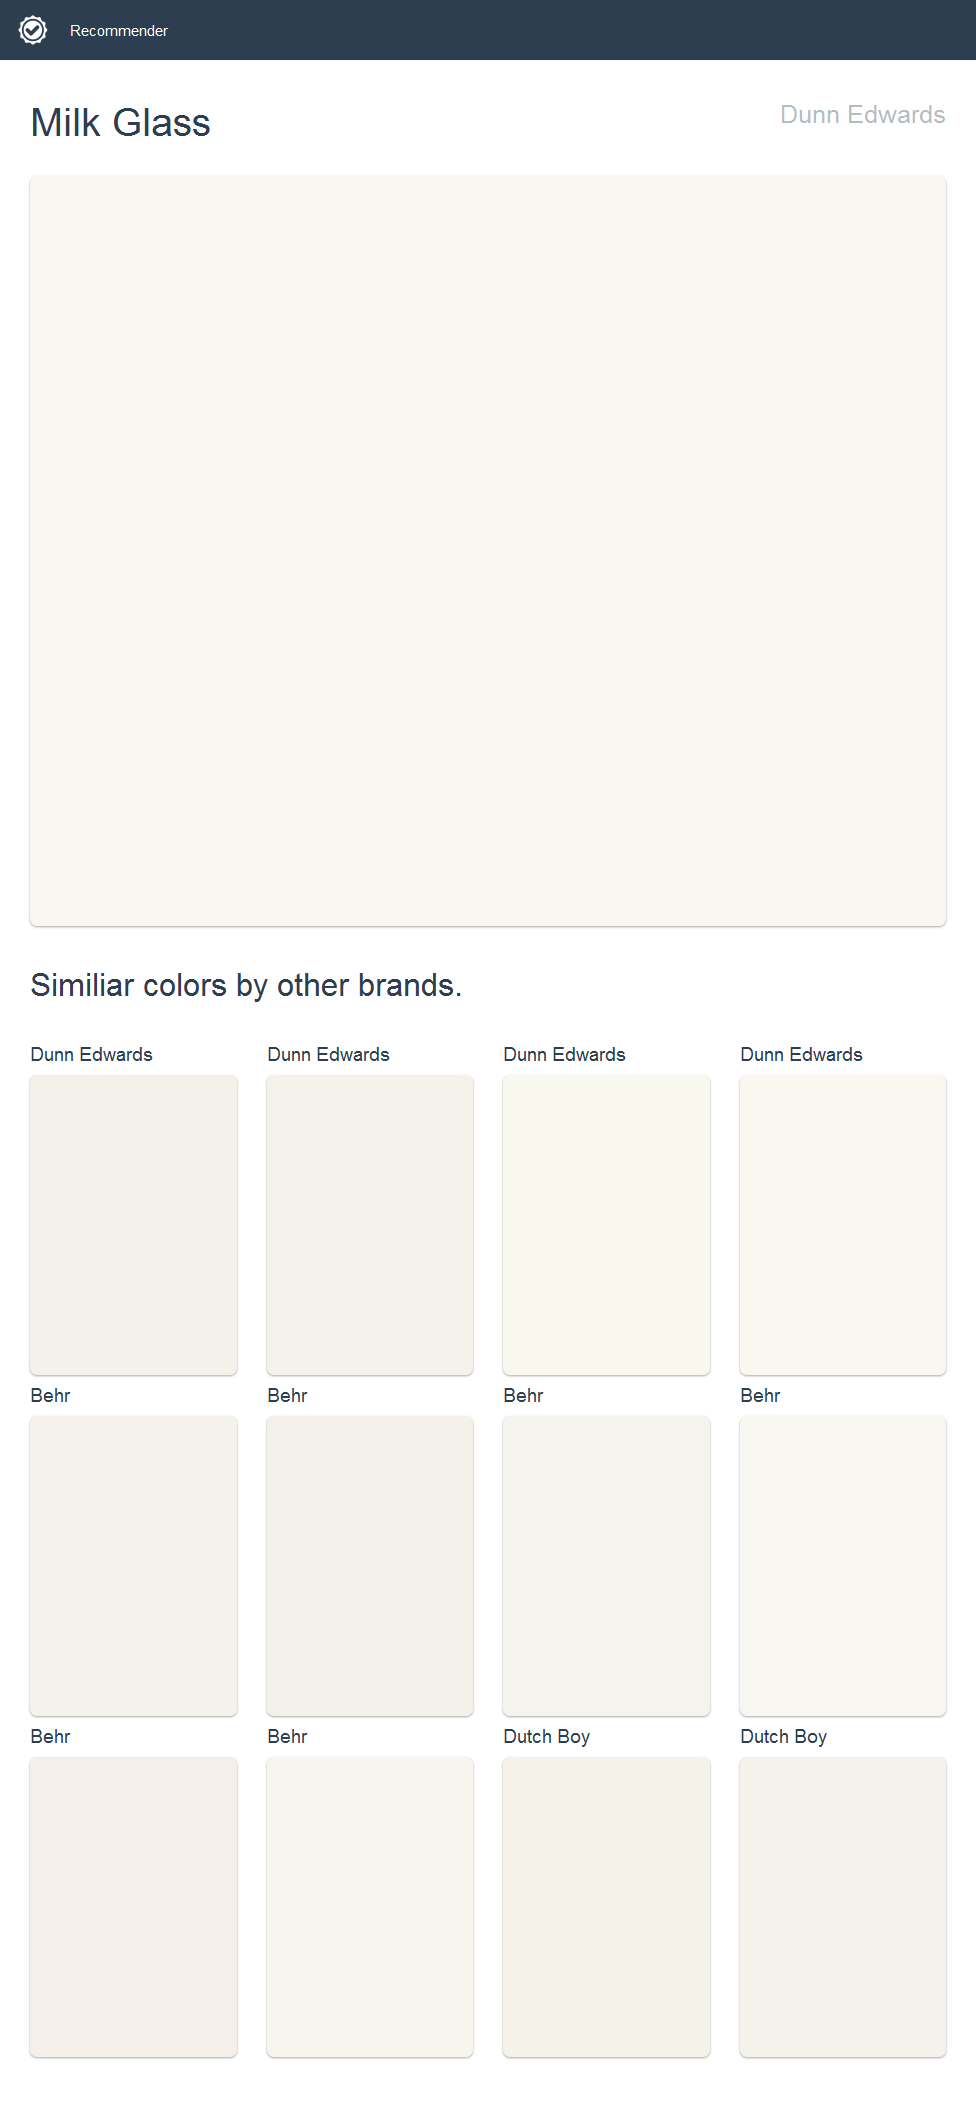 Milk glass dunn edwards click the image to see similiar colors by other brands